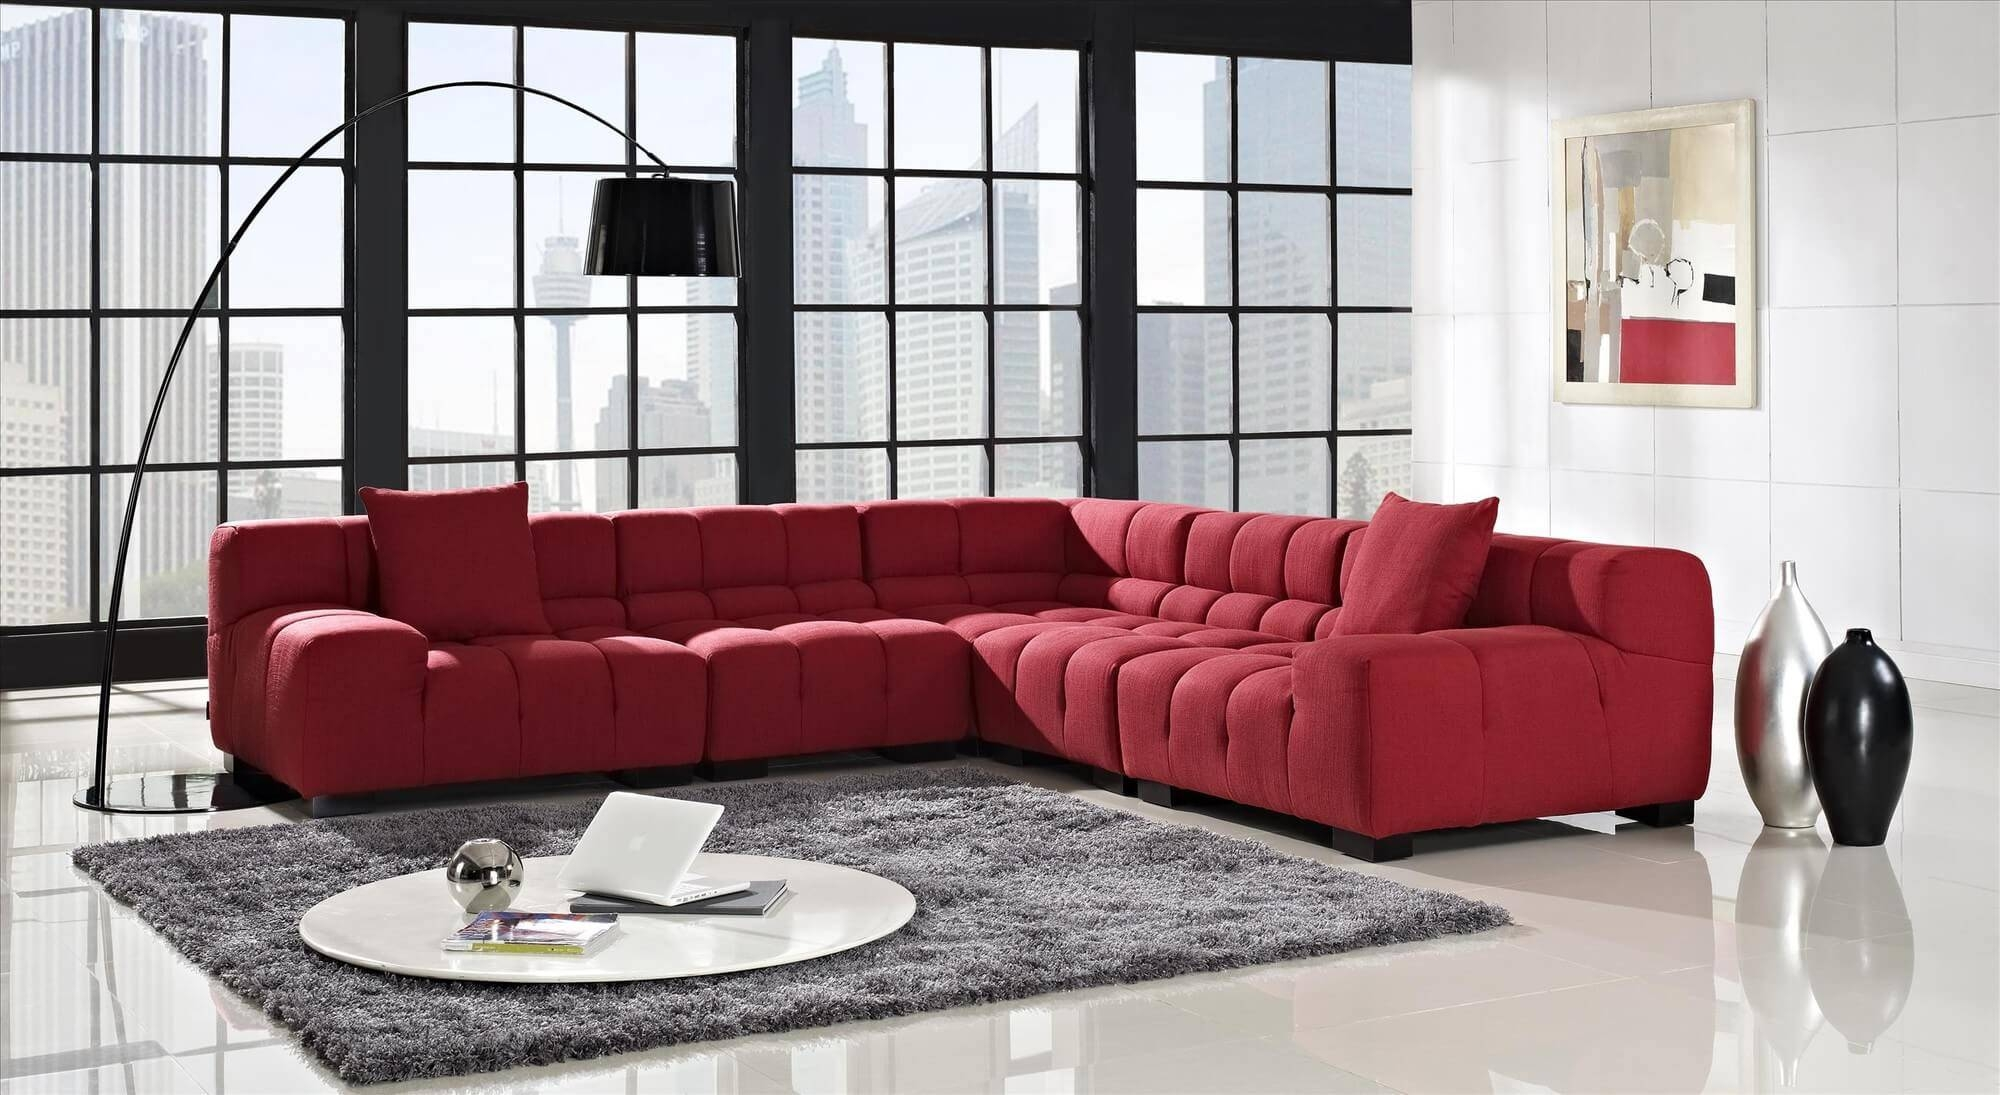 Luxury Tufted Sectionals Sofas 71 In 10 Foot Sectional Sofa With Inside 10 Foot Sectional Sofa (View 18 of 30)